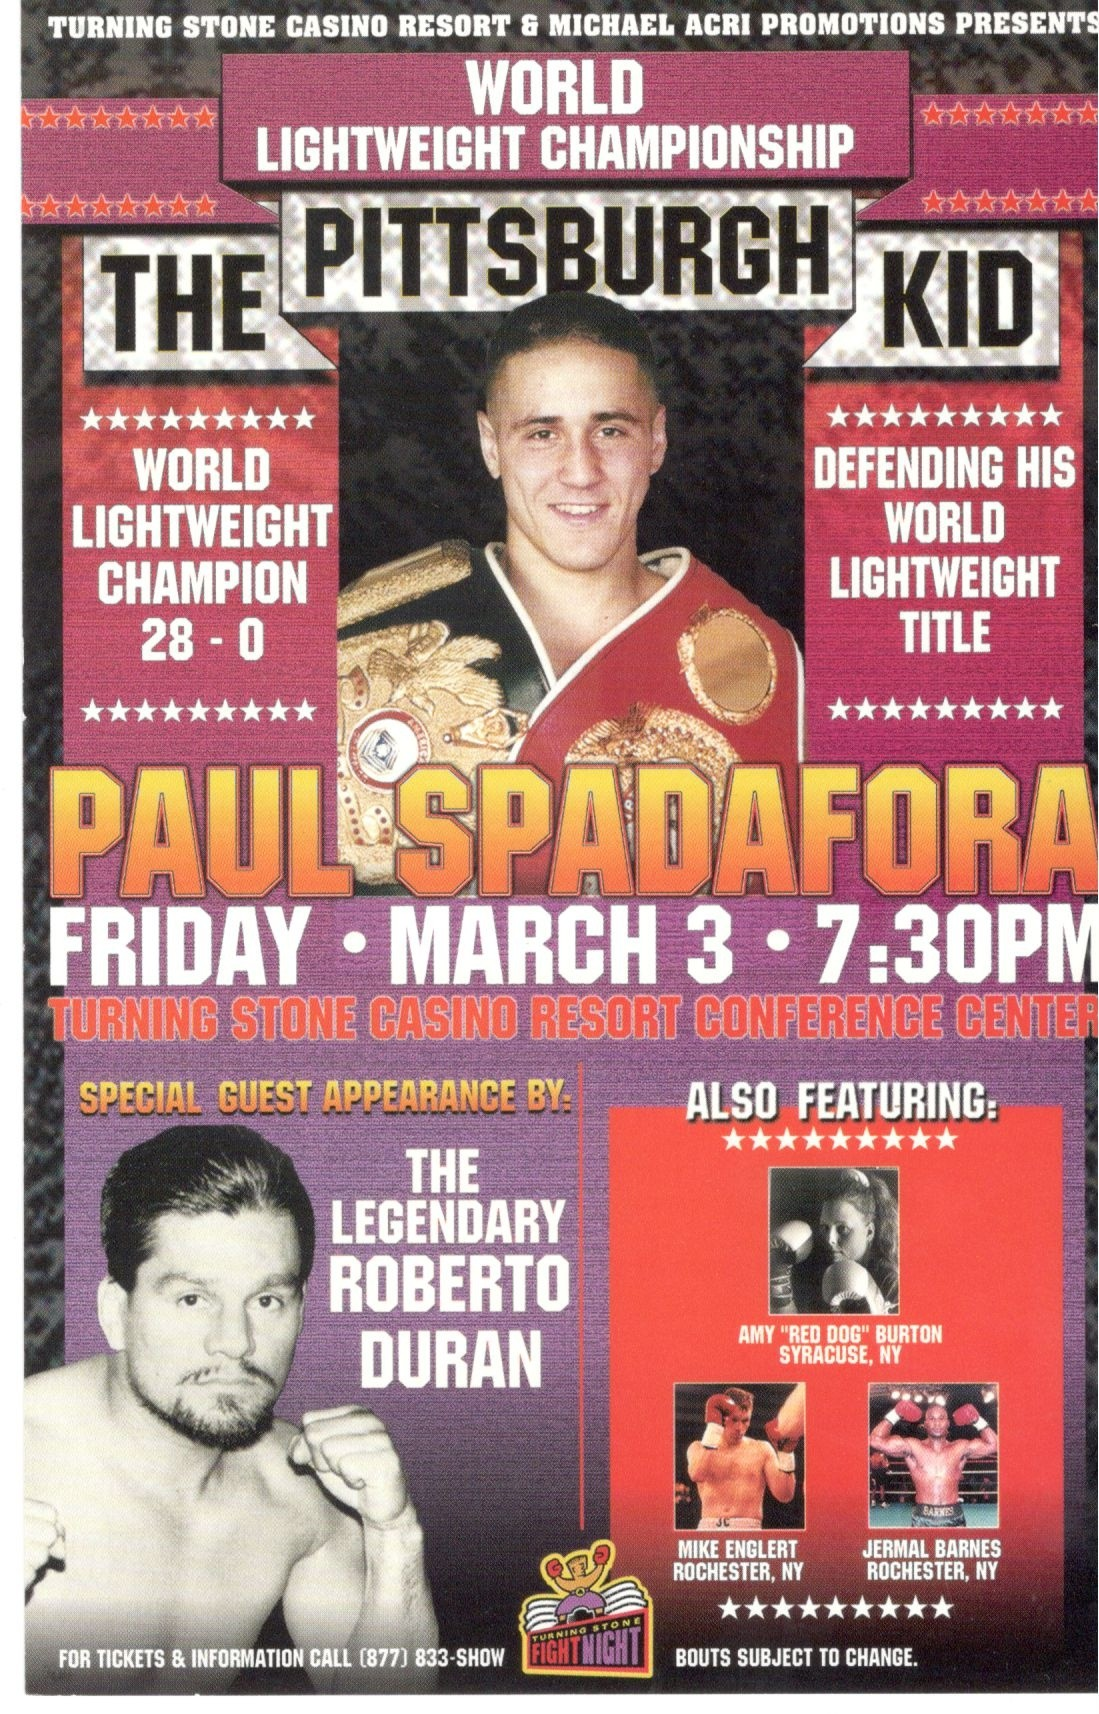 Spadafora and Duran Fight Program